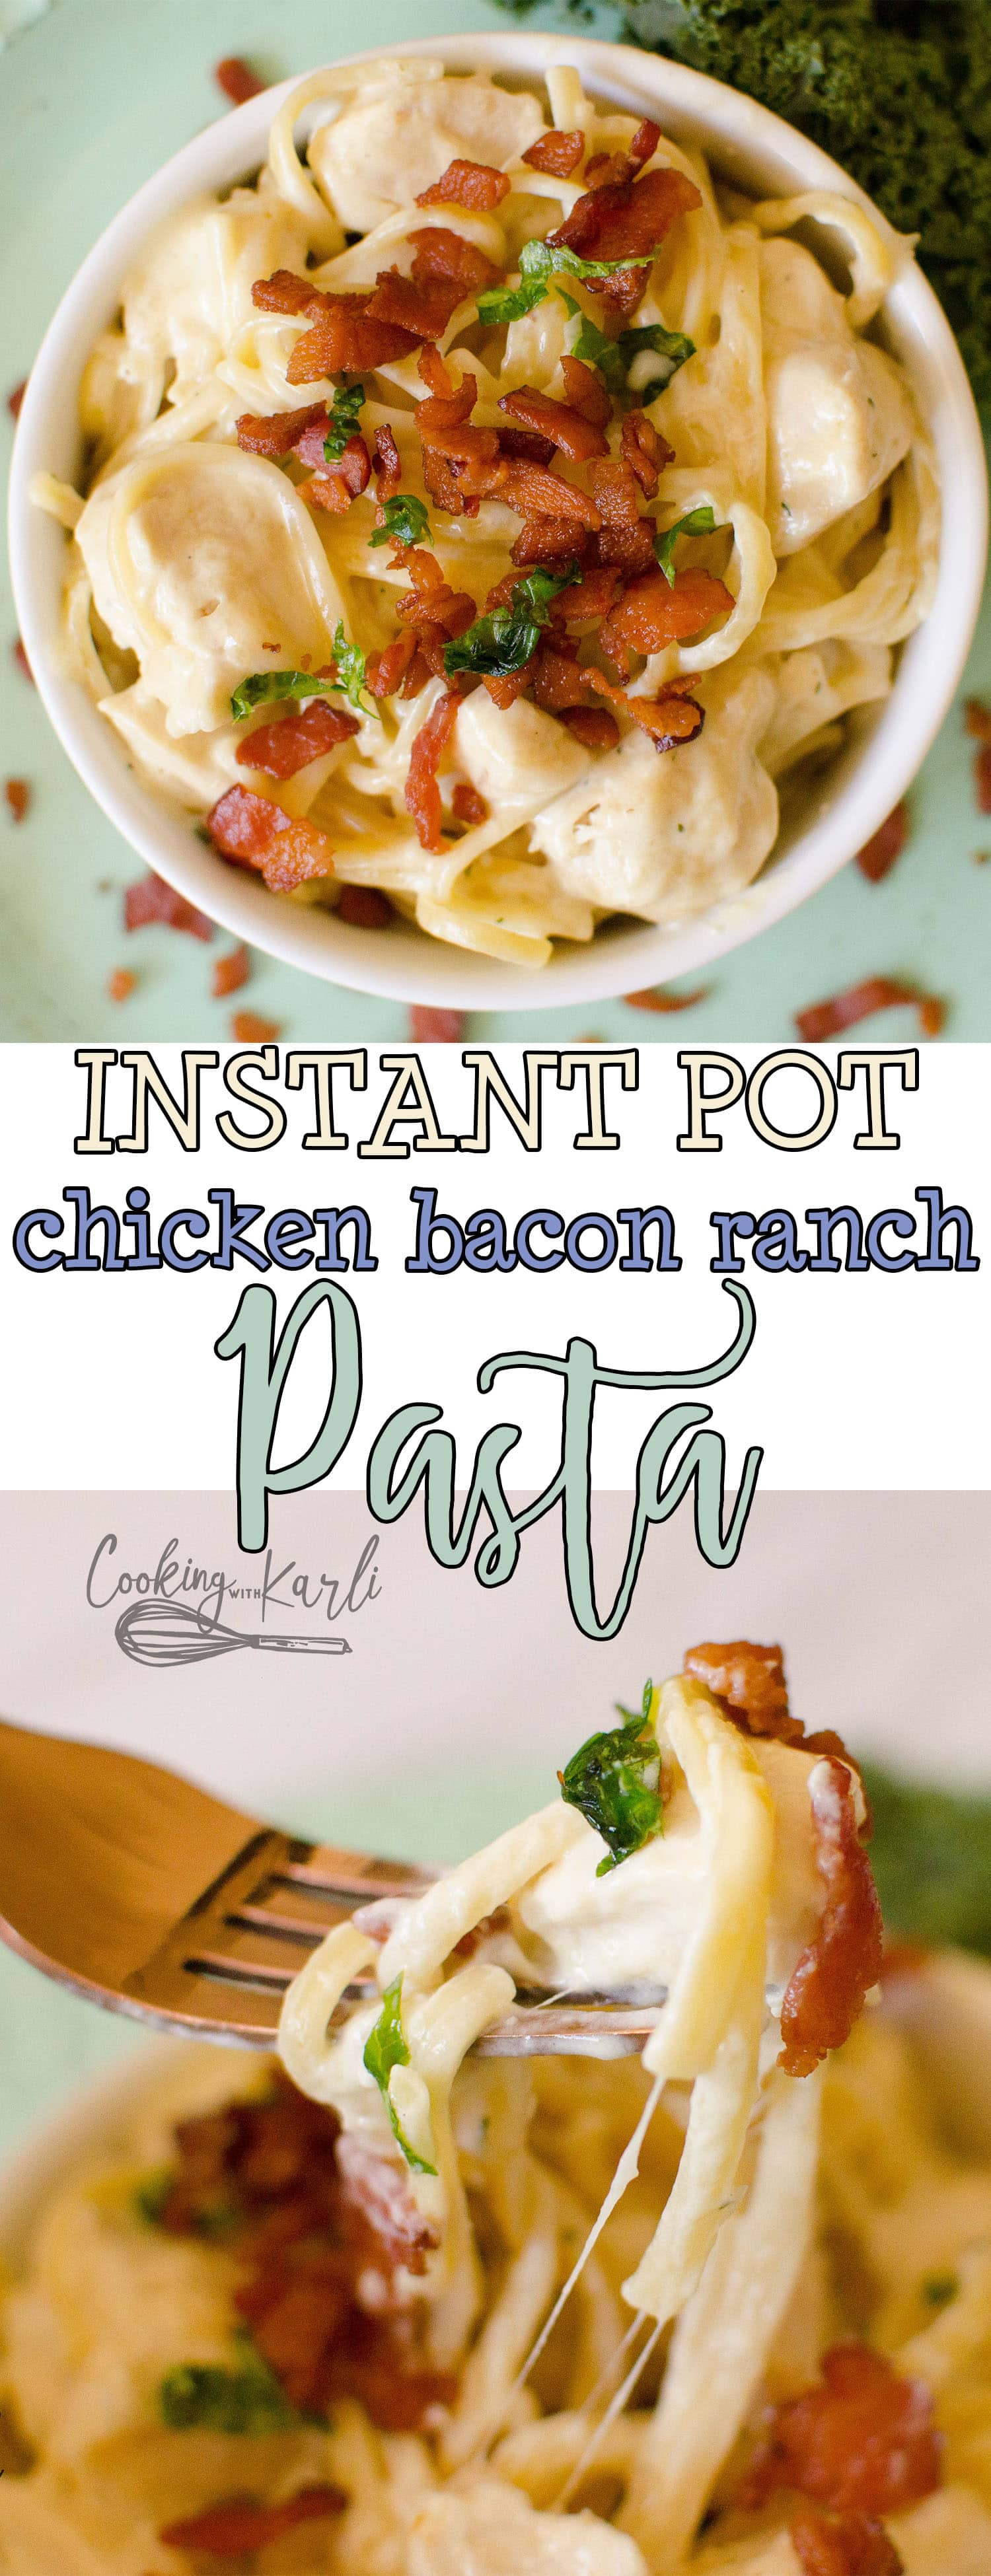 Instant Pot Chicken Bacon Ranch Pasta is creamy, cheesy and full of the classic chicken bacon ranch flavor! Making this in the Instant Pot couldn't be easier, this is a Dump and Start pasta dish that will be ready to eat in 20 minutes flat! |Cooking with Karli| #pasta #instantpot #recipe #dumpandstart #chicken #bacon #ranch